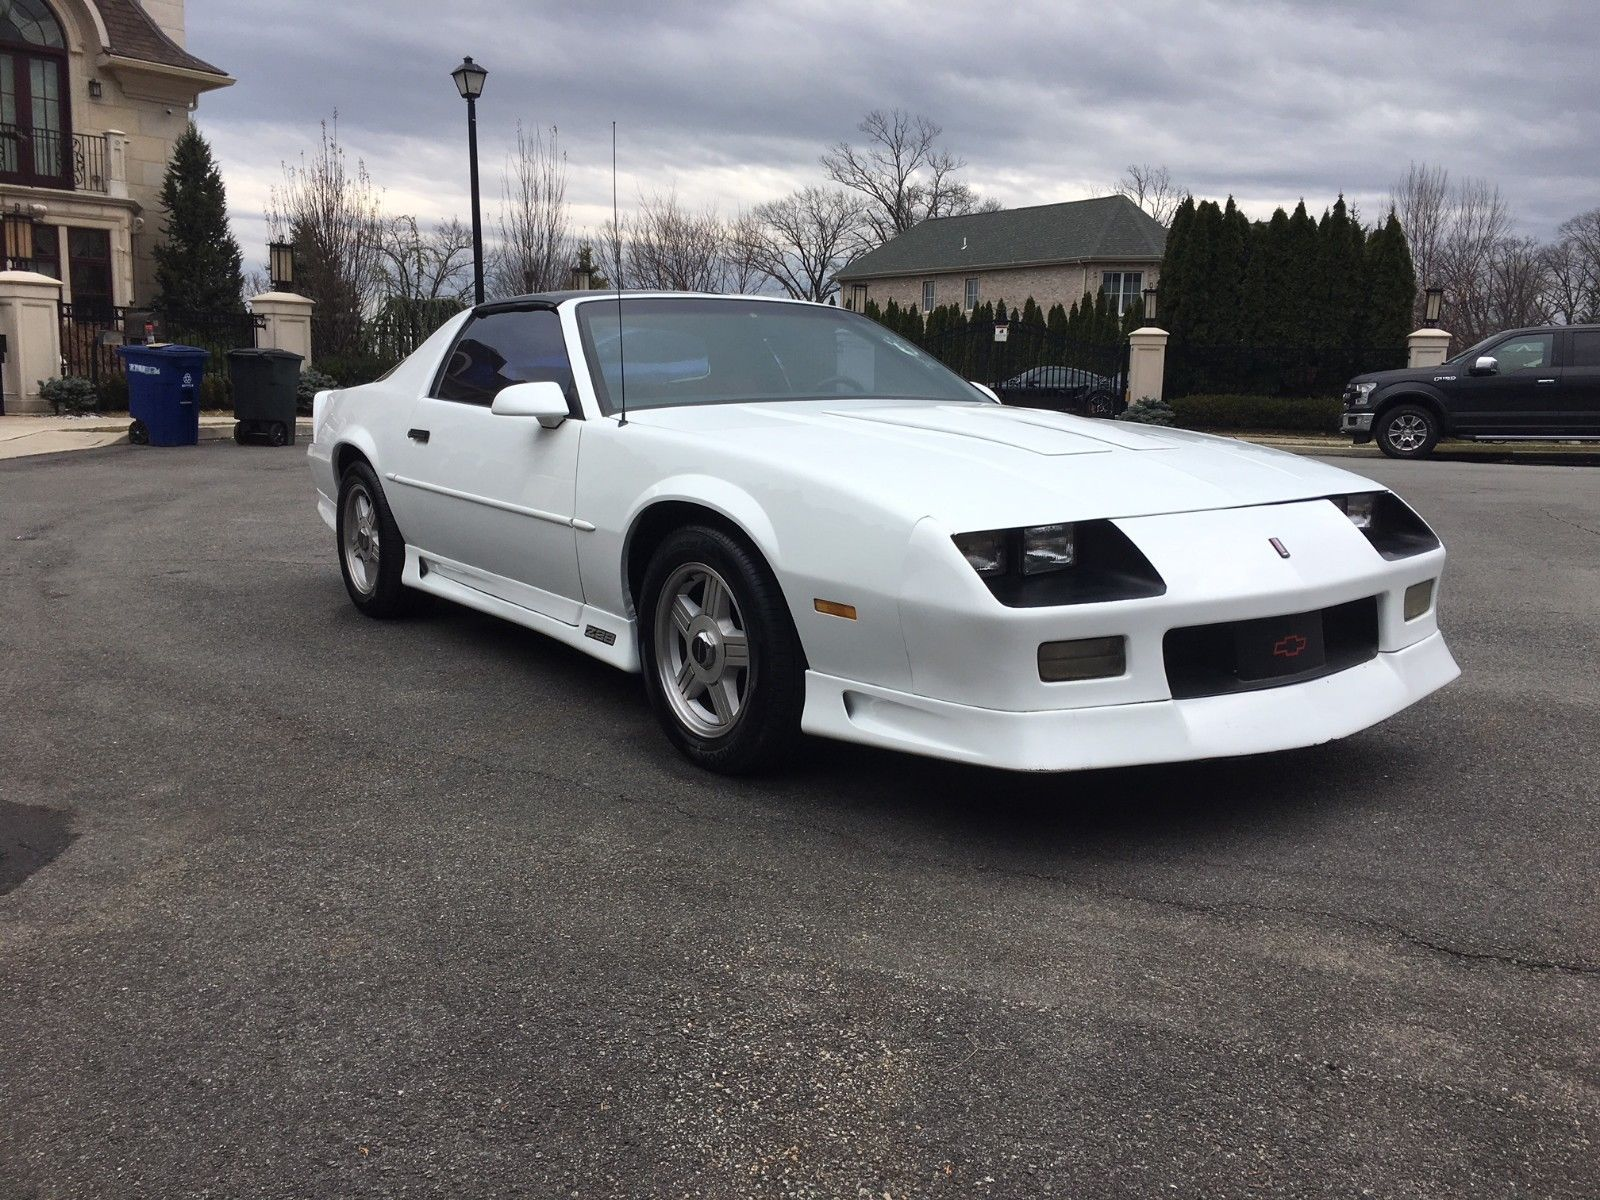 Awesome 1991 Chevrolet Camaro Z28 1991 Chevrolet Camaro Z28 5 0l T Tops New Tires And More 2018 2019